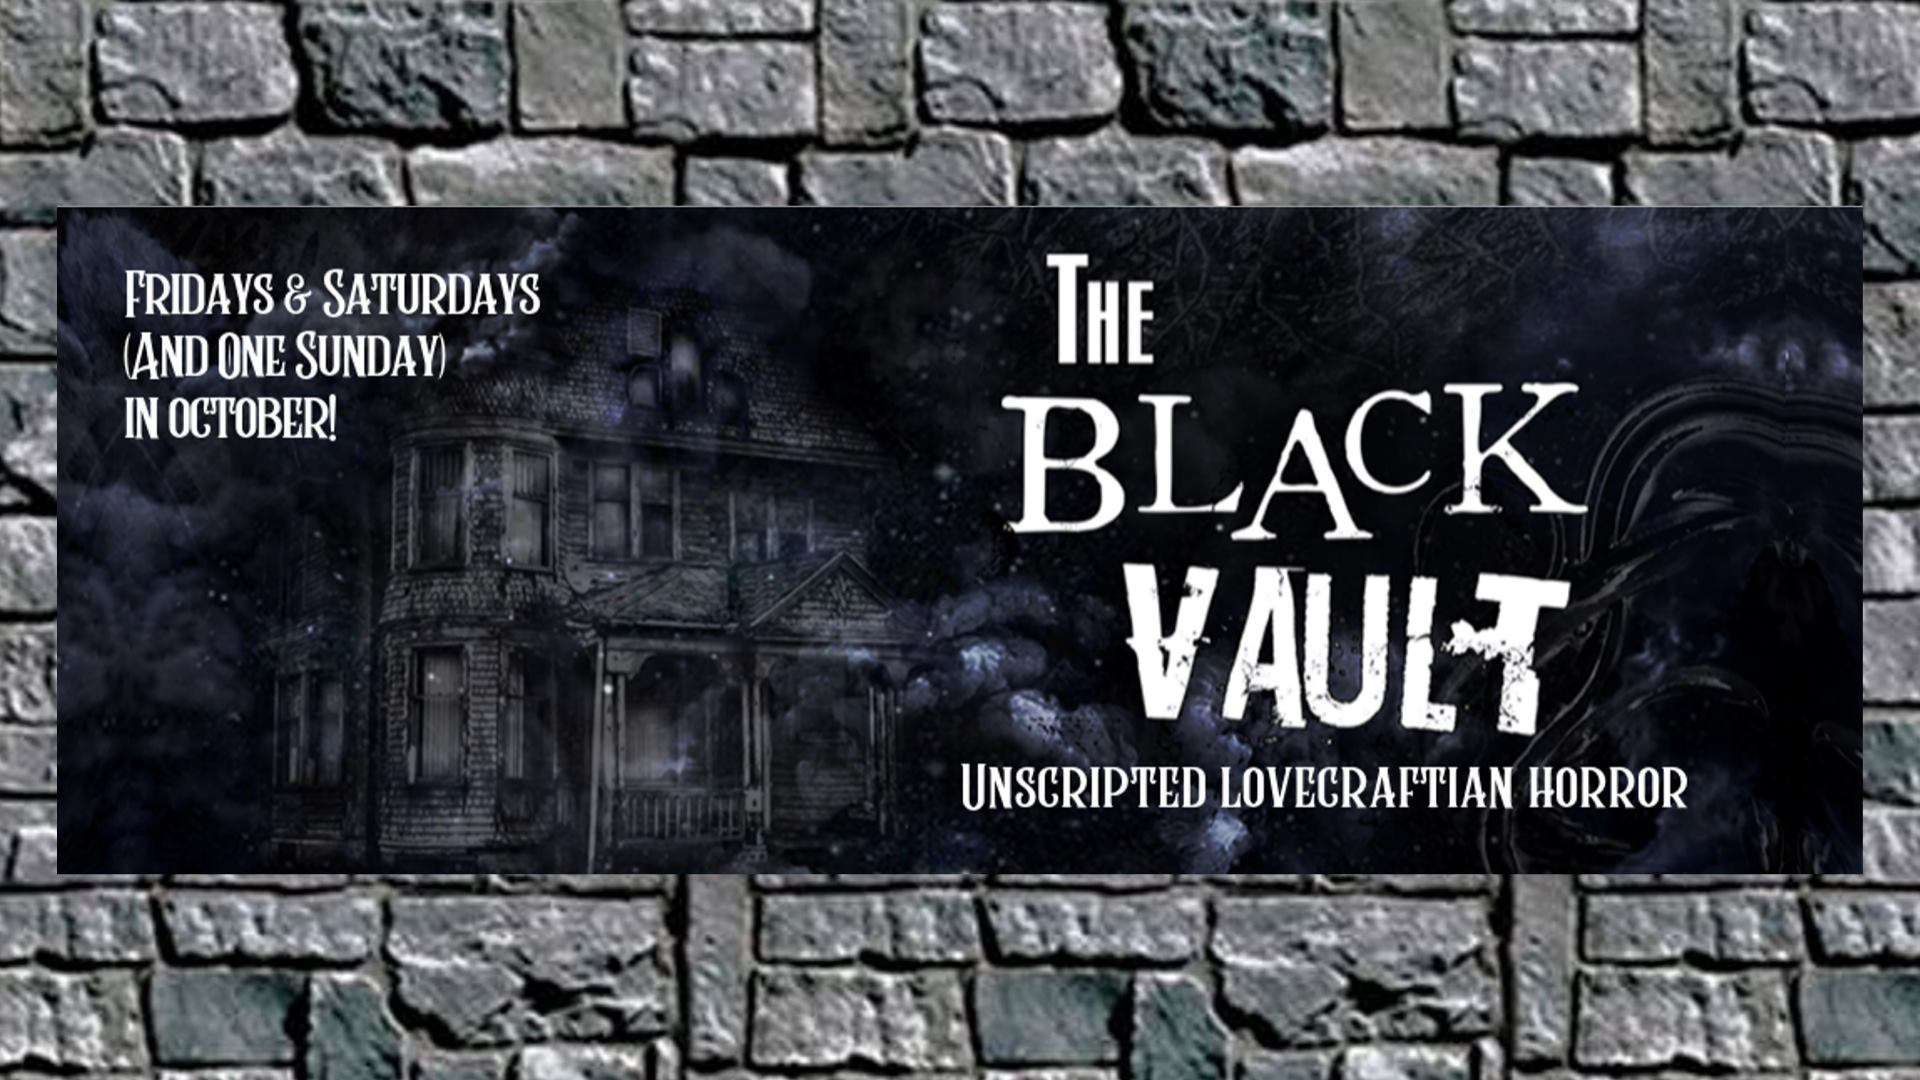 The Black Vault - Unscripted Lovecraftian Horror